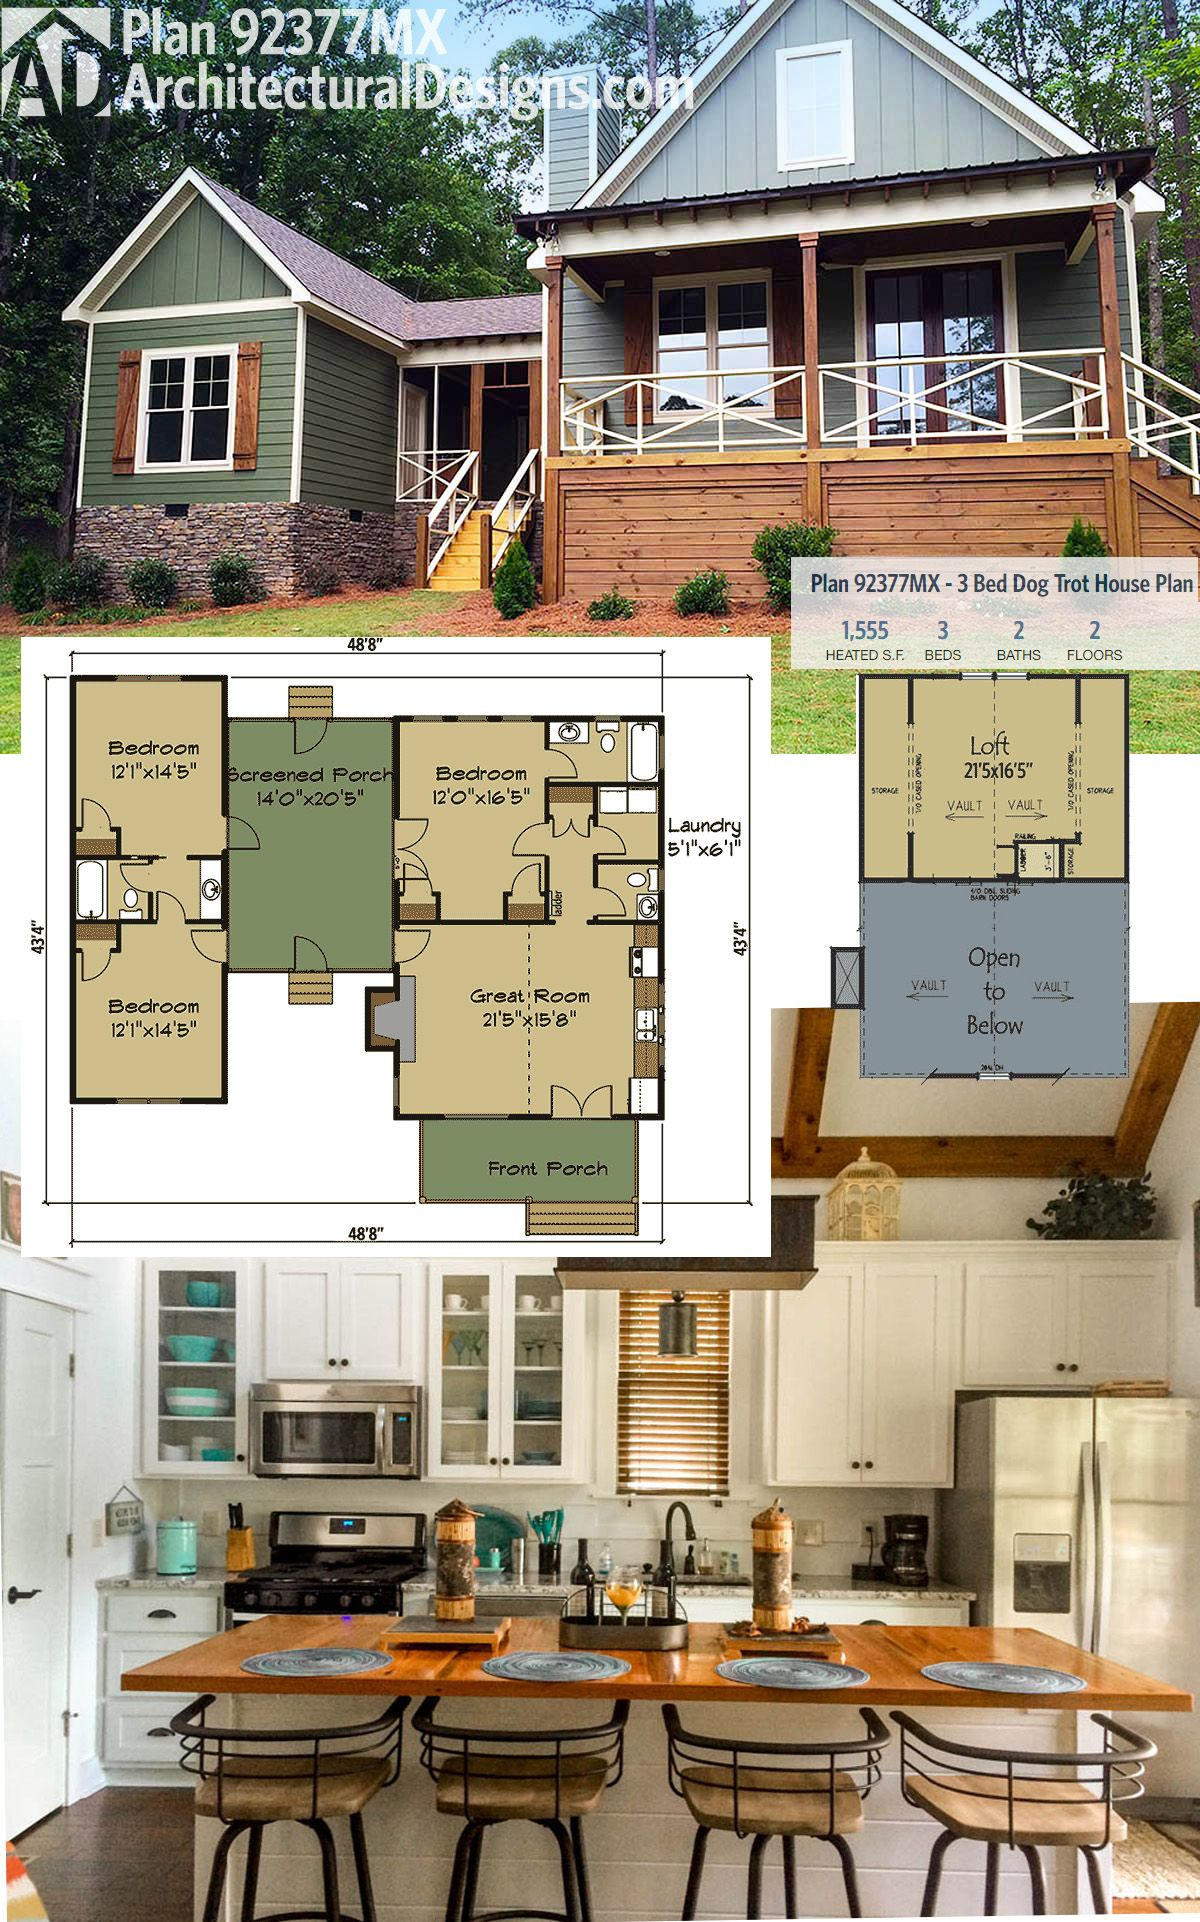 Plan 92377mx 3 bed dog trot house plan with sleeping loft for Great small house plans